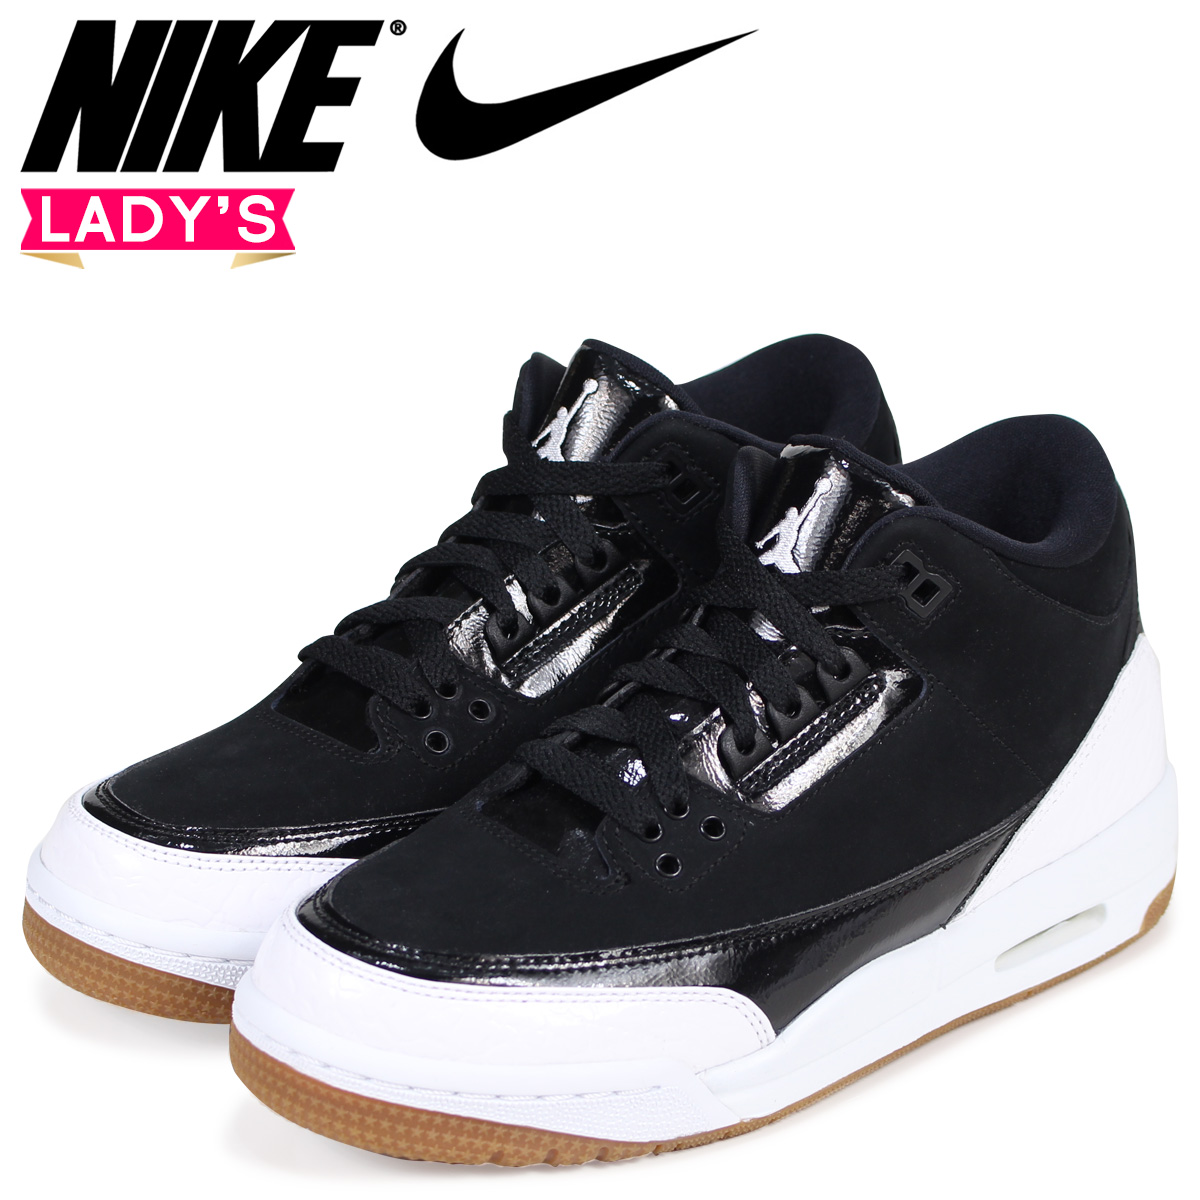 df19d94a862b NIKE Nike Air Jordan 3 nostalgic lady s sneakers AIR JORDAN 3 RETRO GG  441